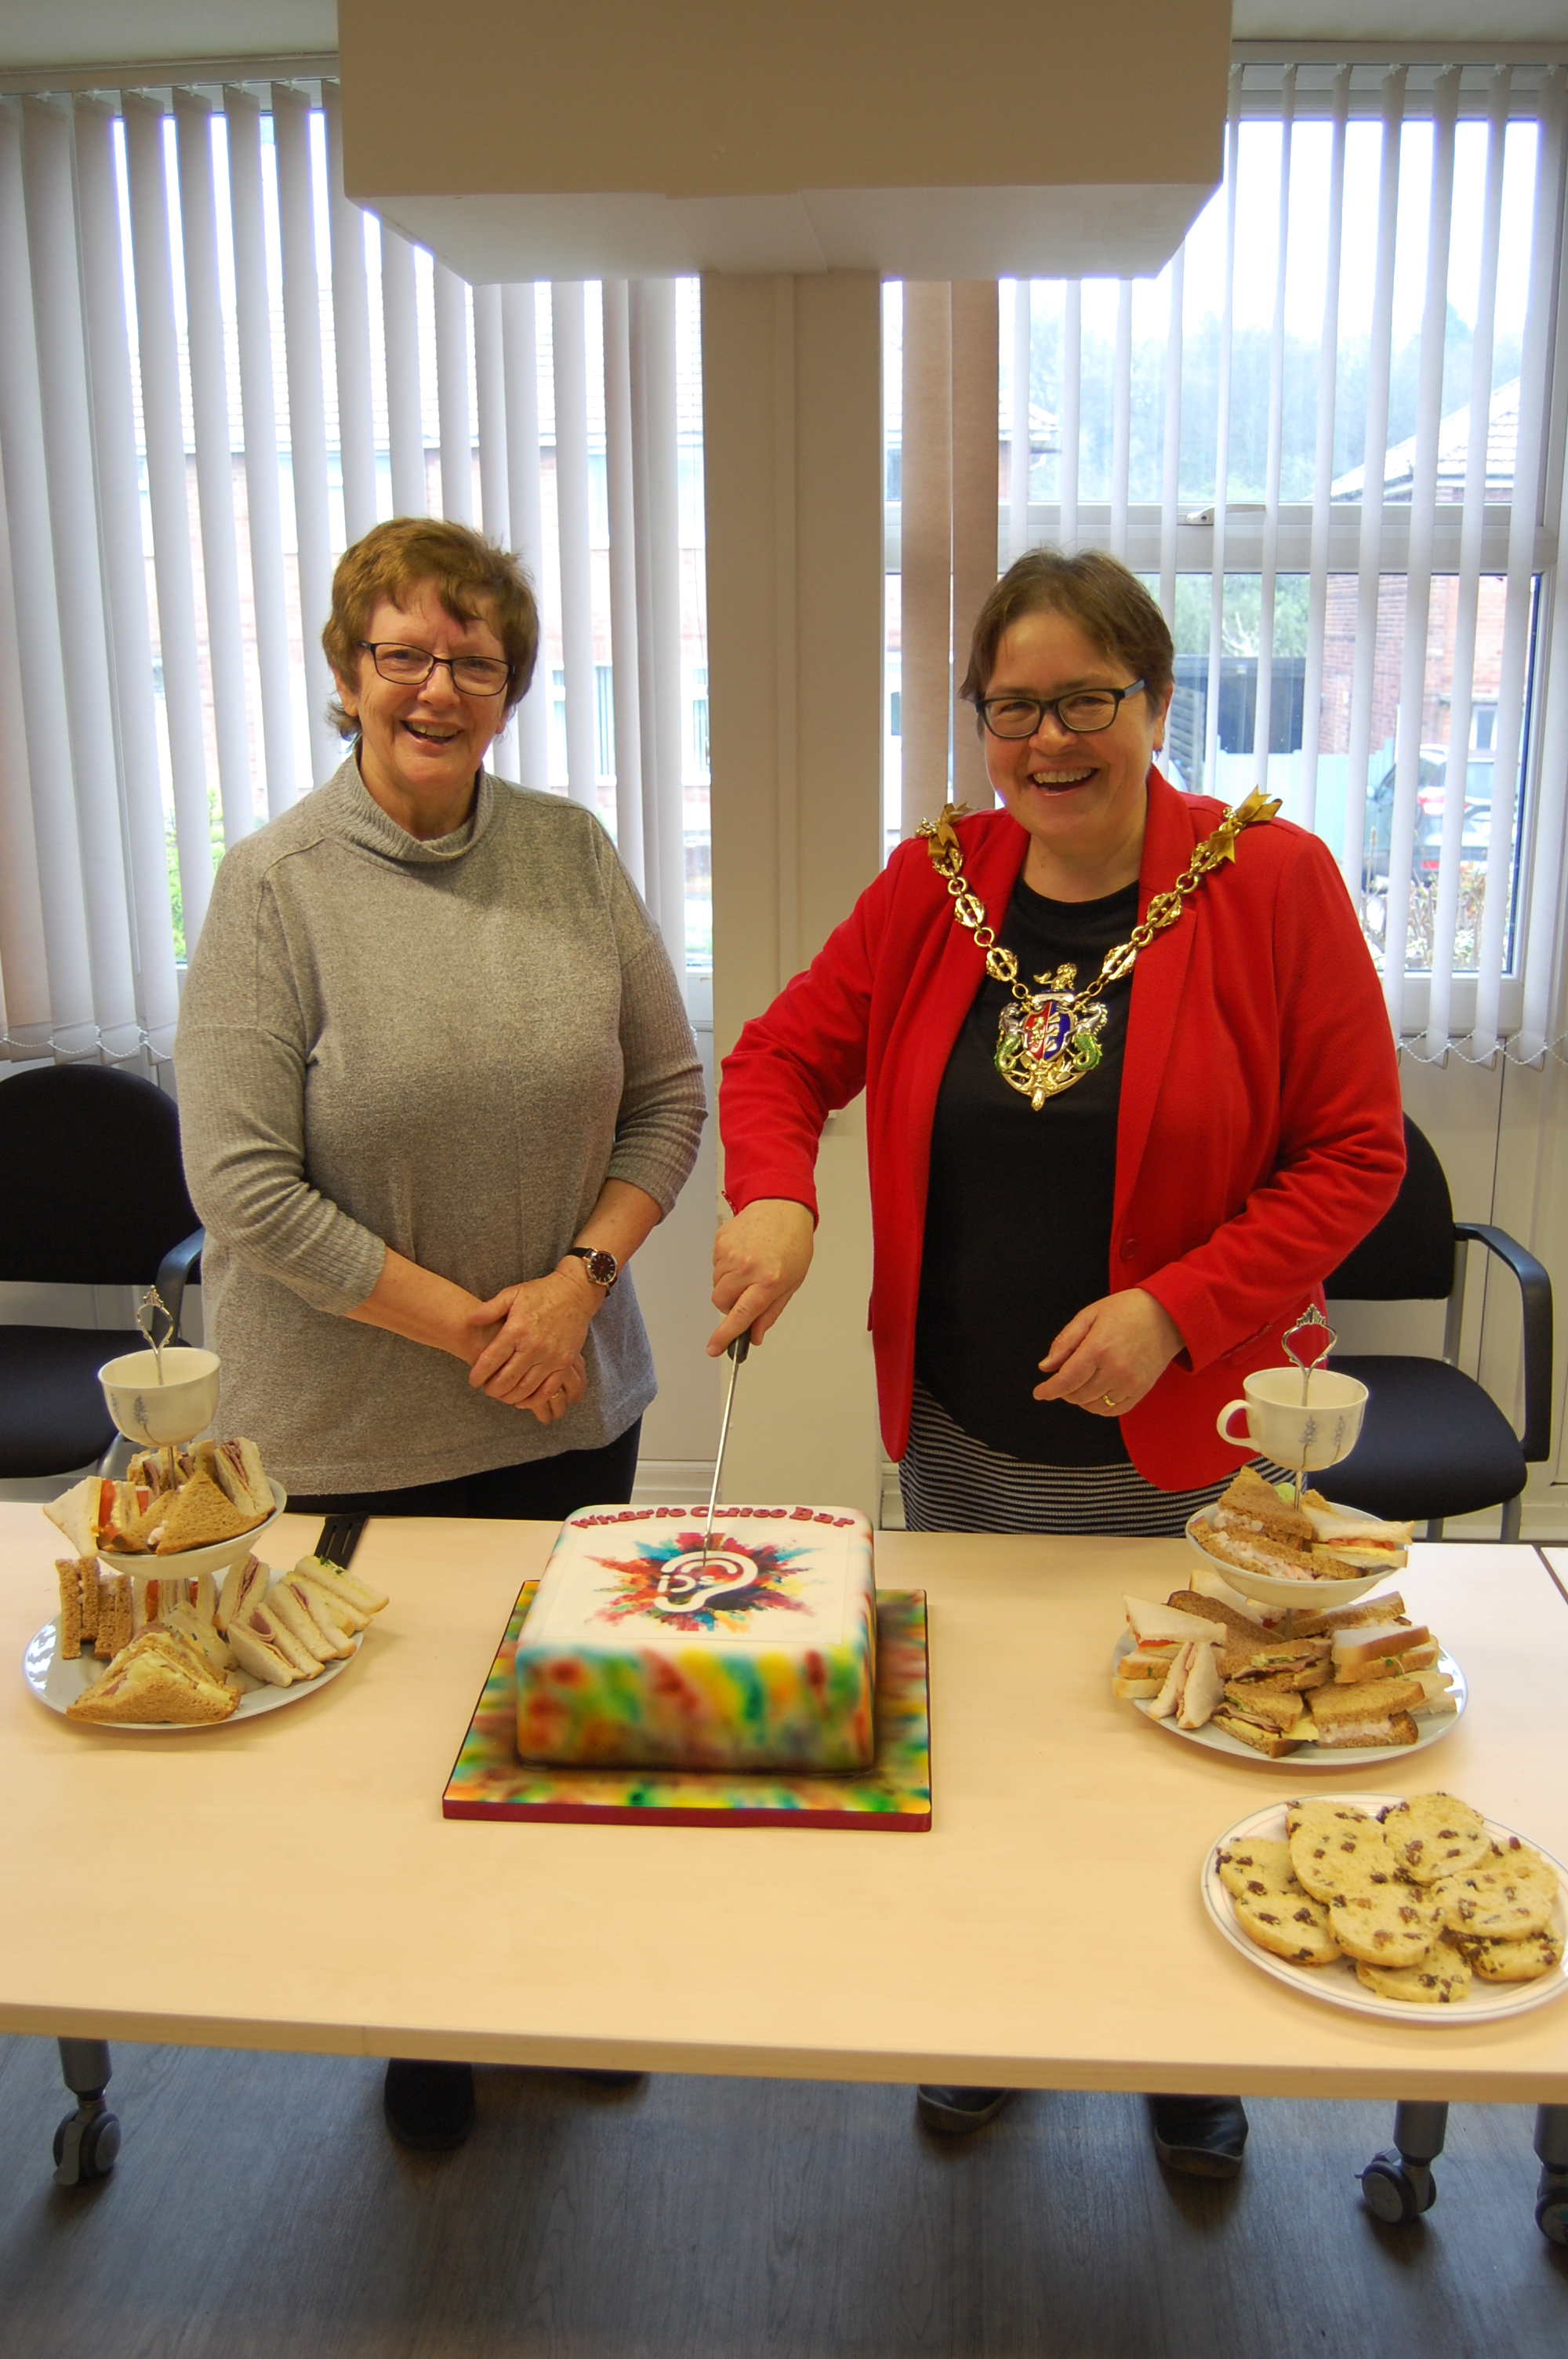 Mayor of Ipswich Councillor Jane Riley cuts commemorative cake with IDS Chair Alison Berry